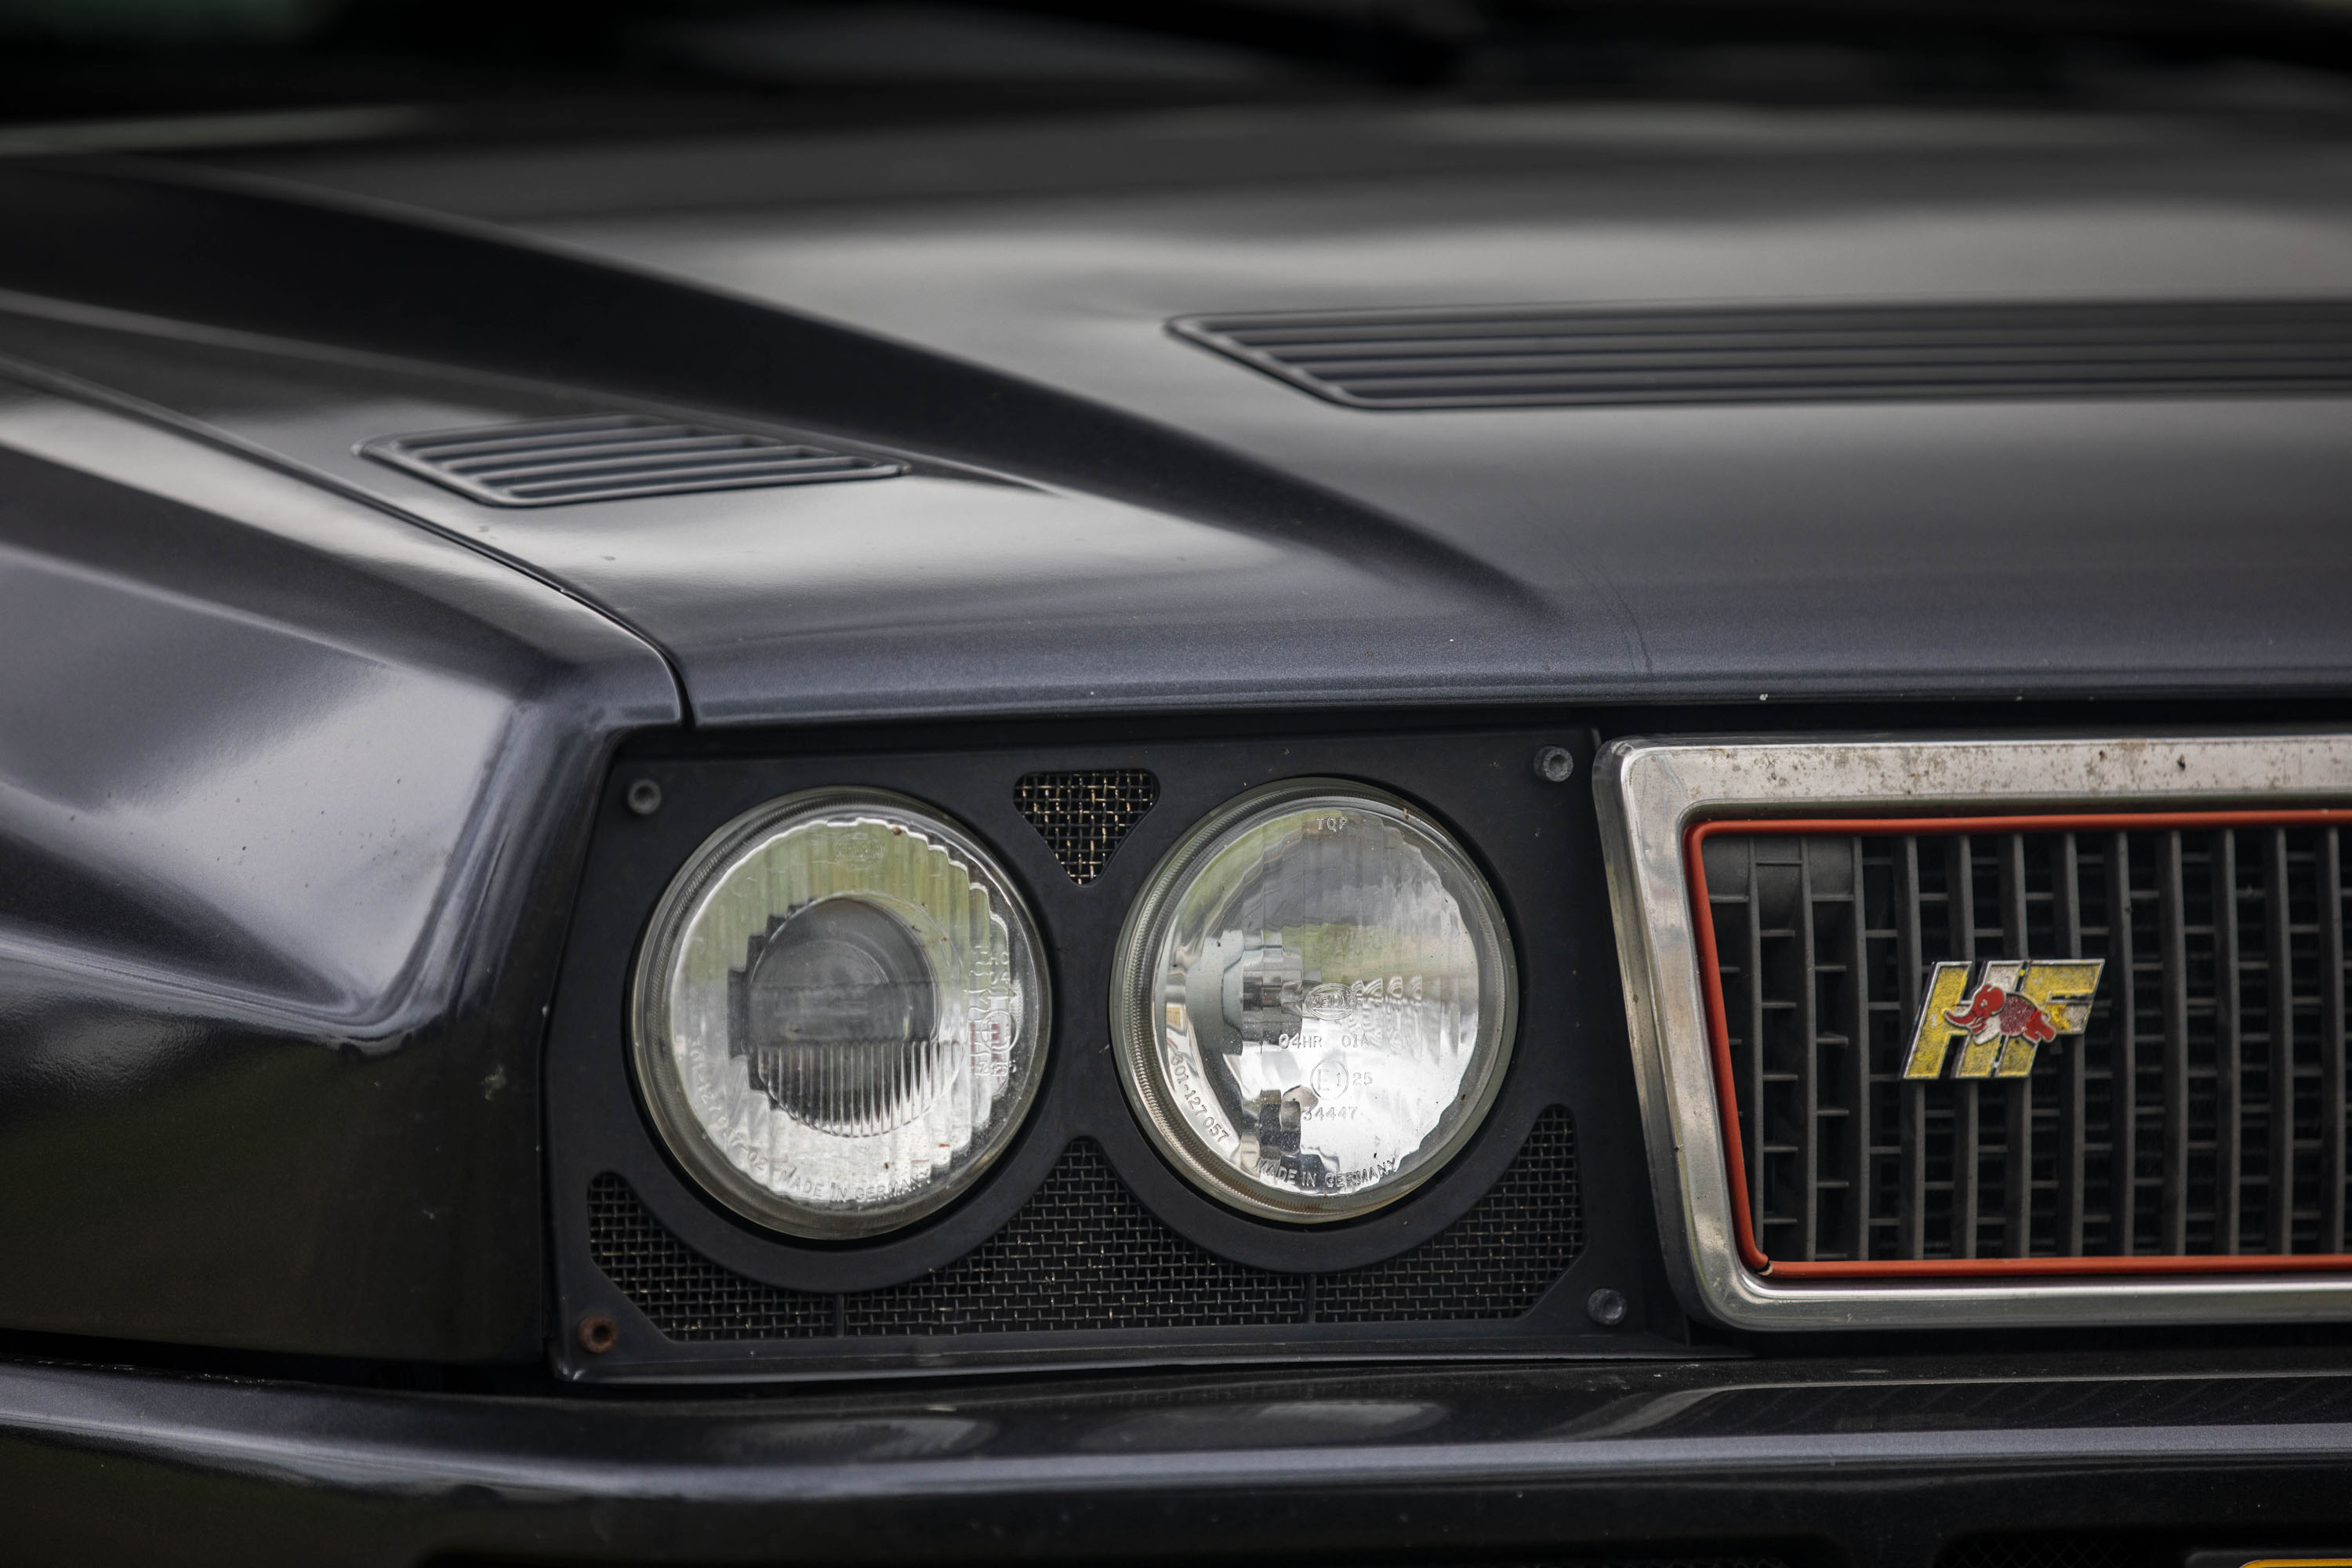 Lancia Integrale headlight